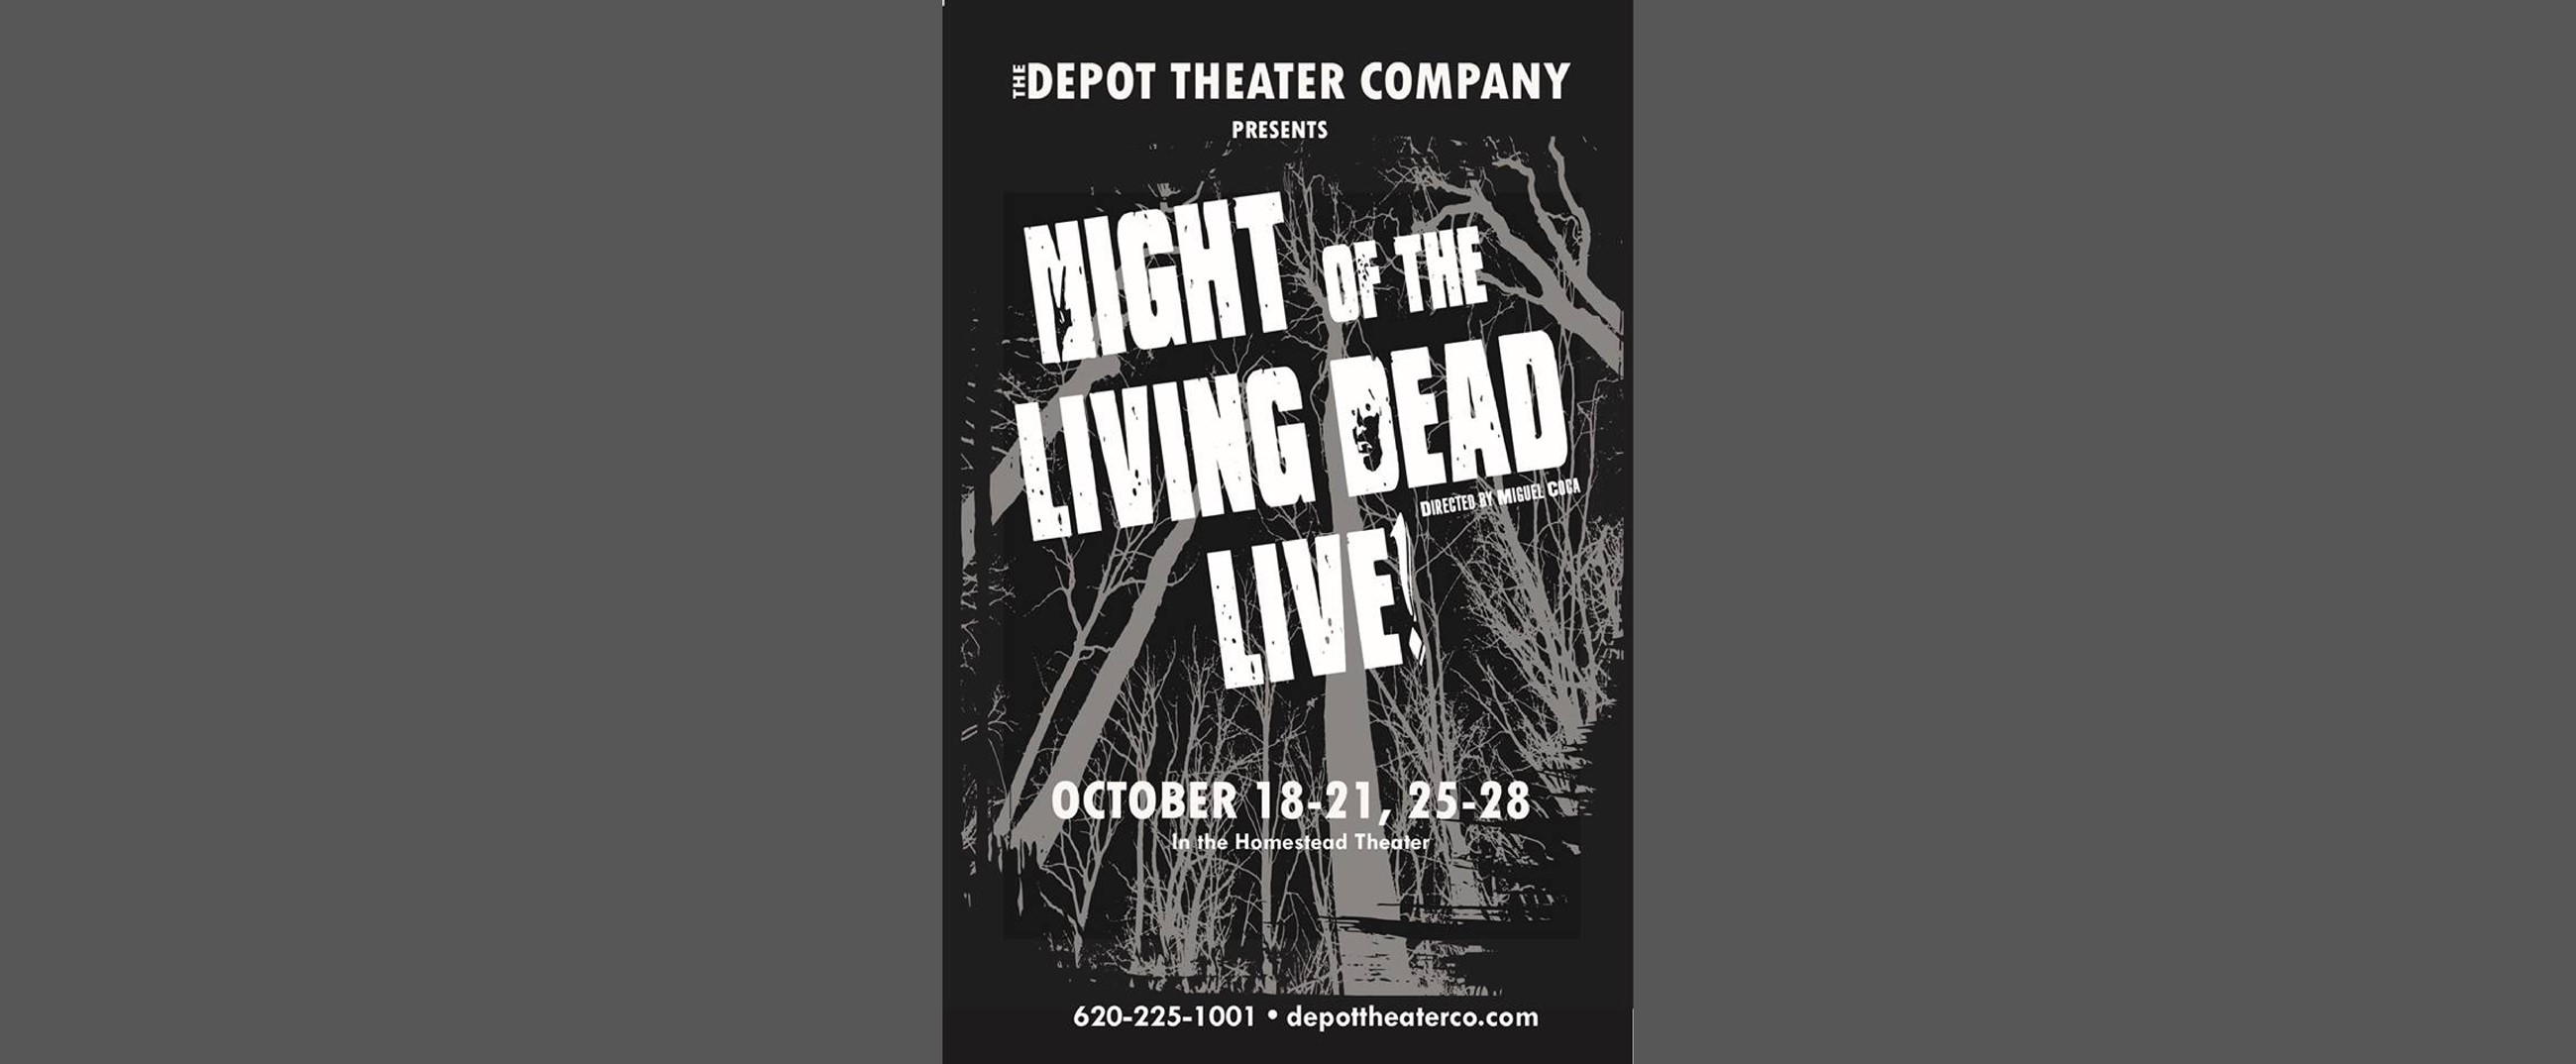 Depot Theater Company - Night of the Living Dead